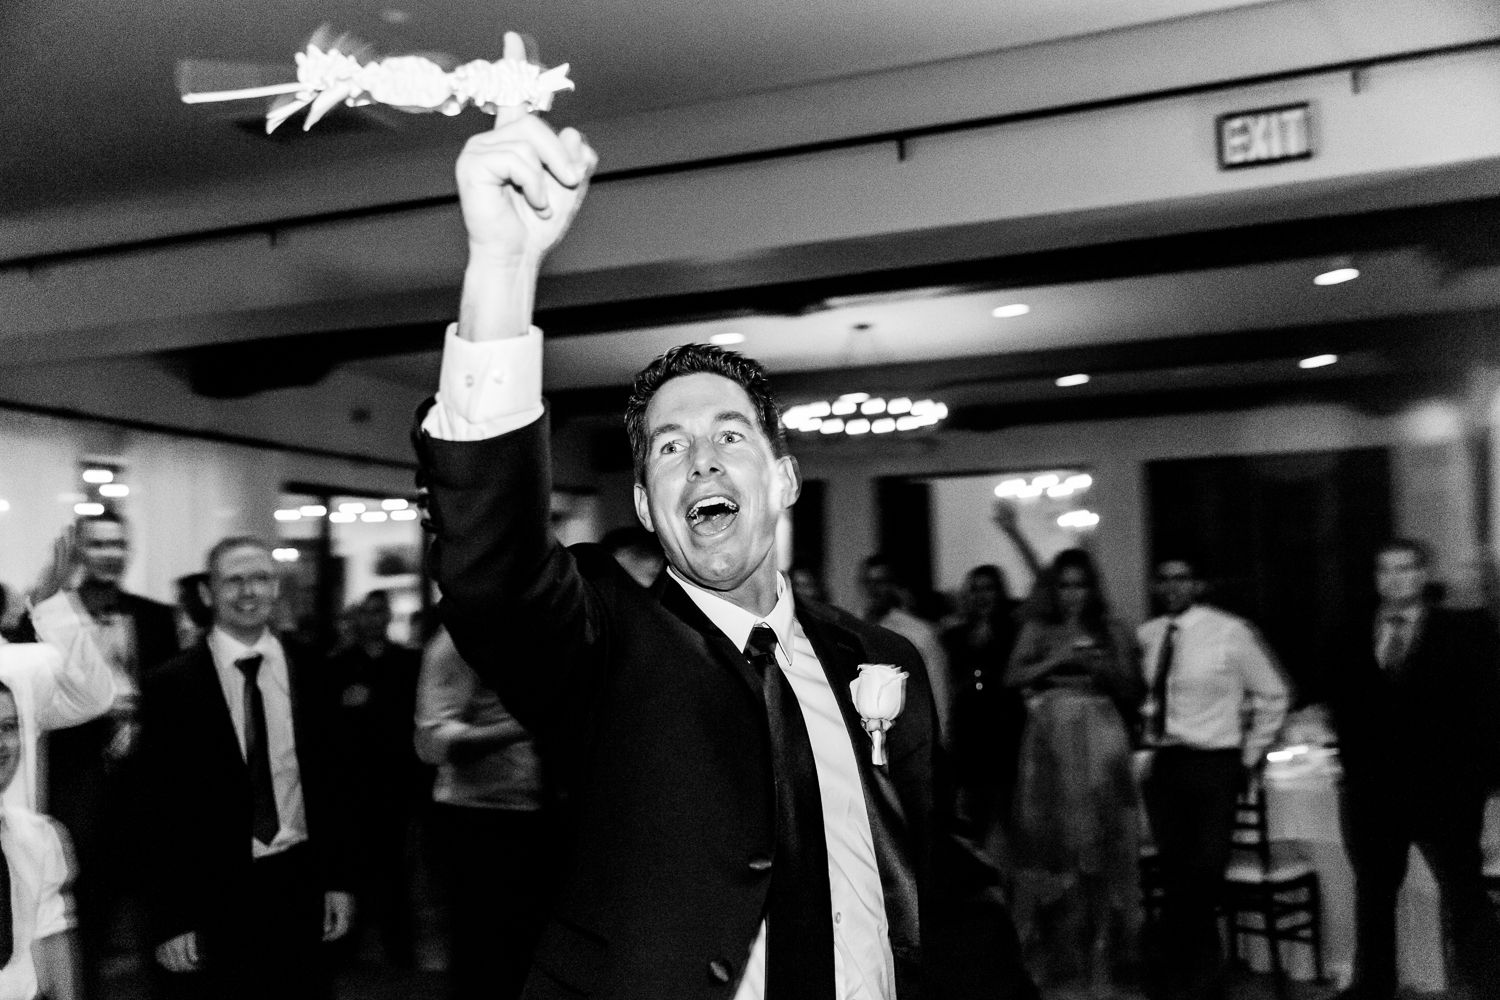 2_1r7reception_pass_proofonly_april_paul73115__heathereastphotography15_mgl3075_1719.jpg